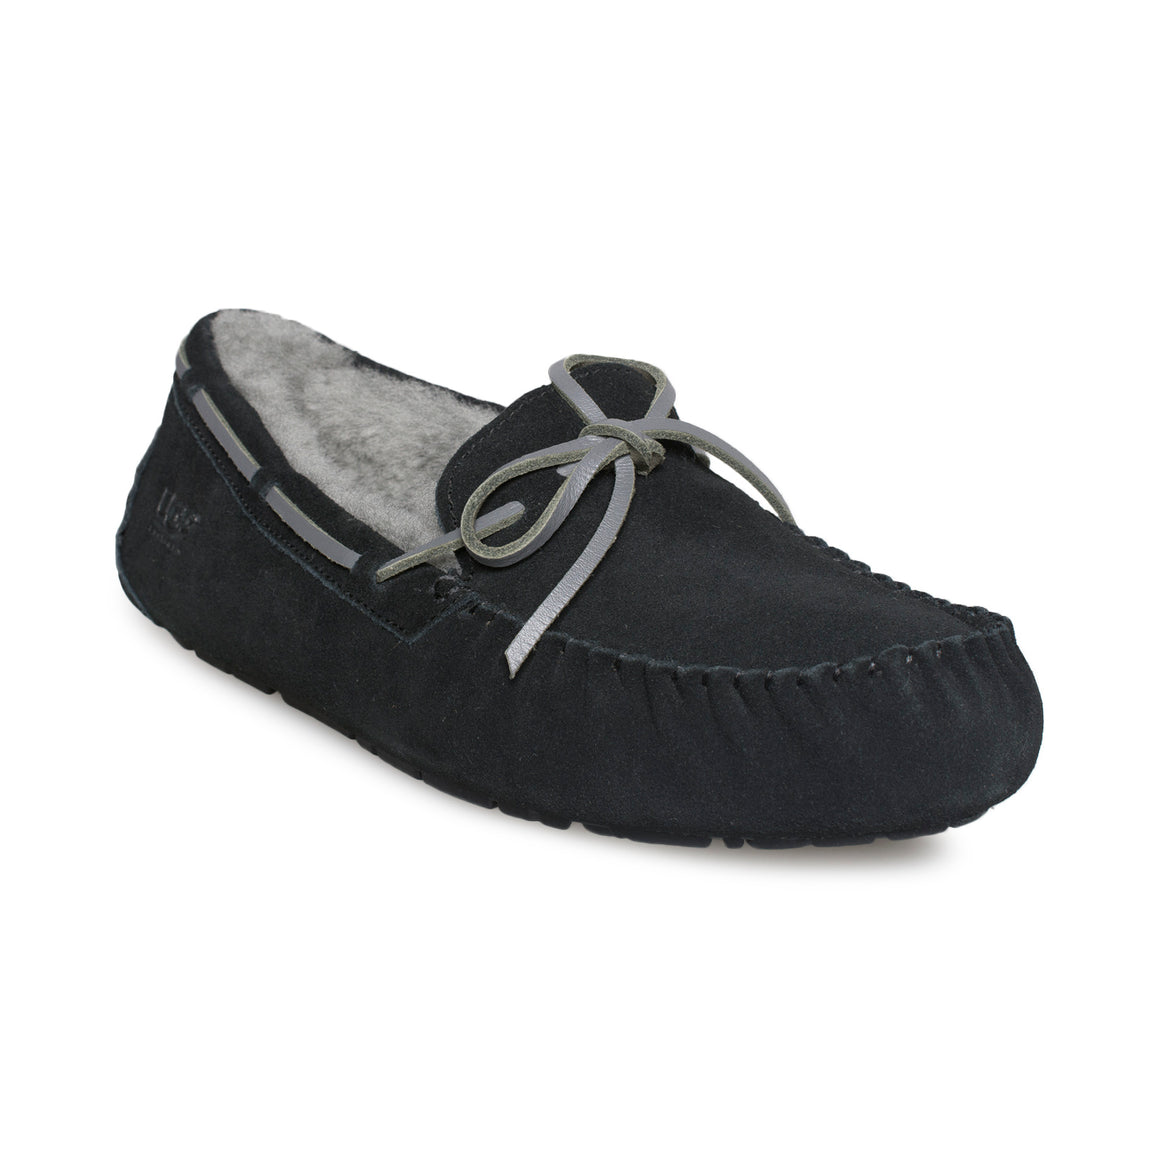 UGG Olsen Black Shoes - Men's